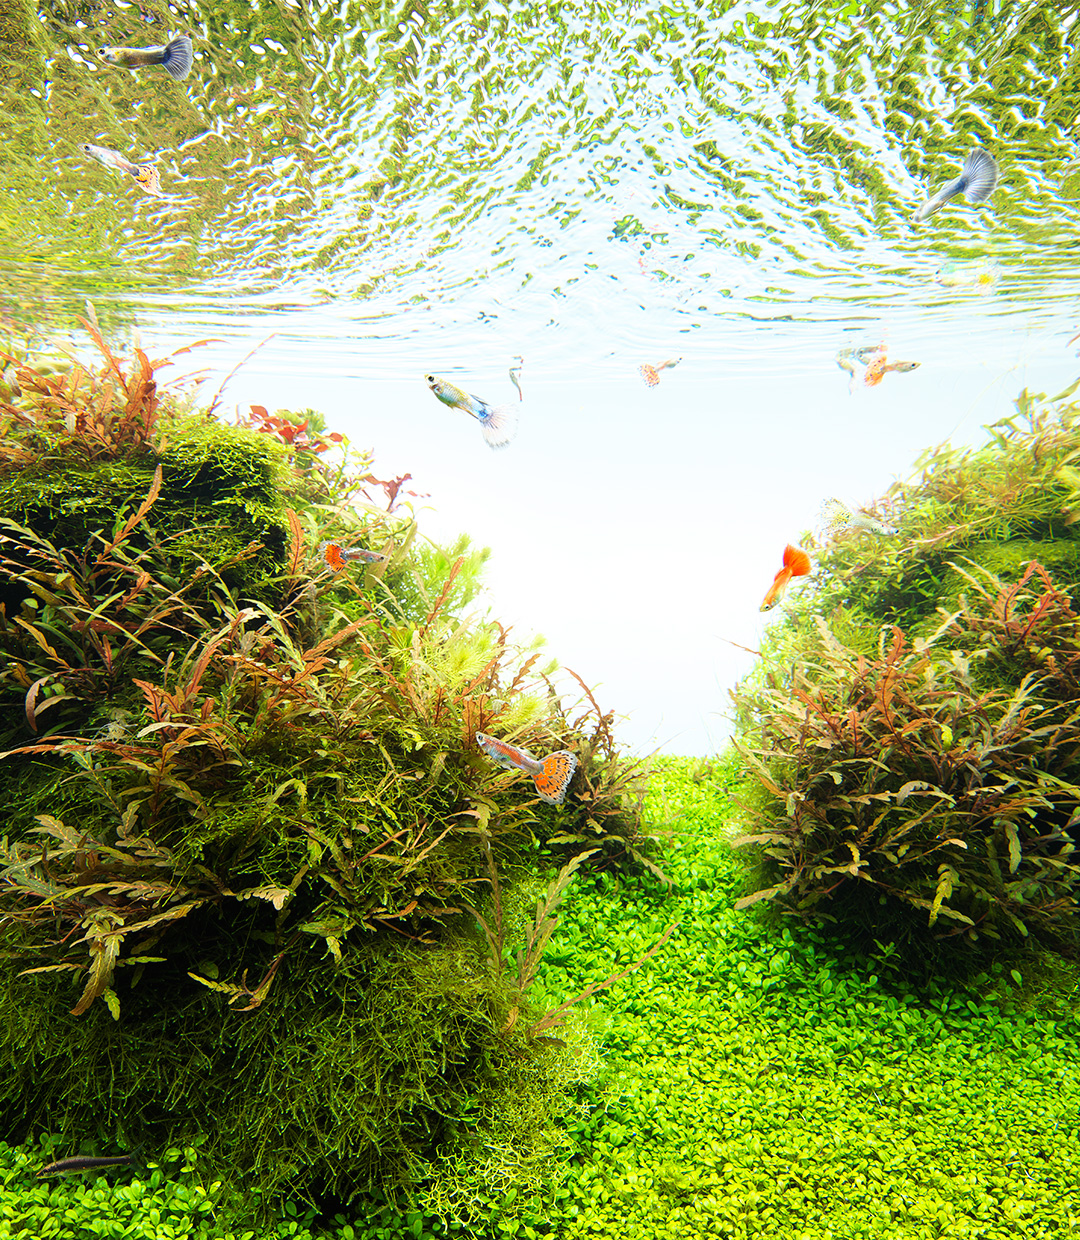 NATURE  IN THE GLASS 'The Impression of Paradise'